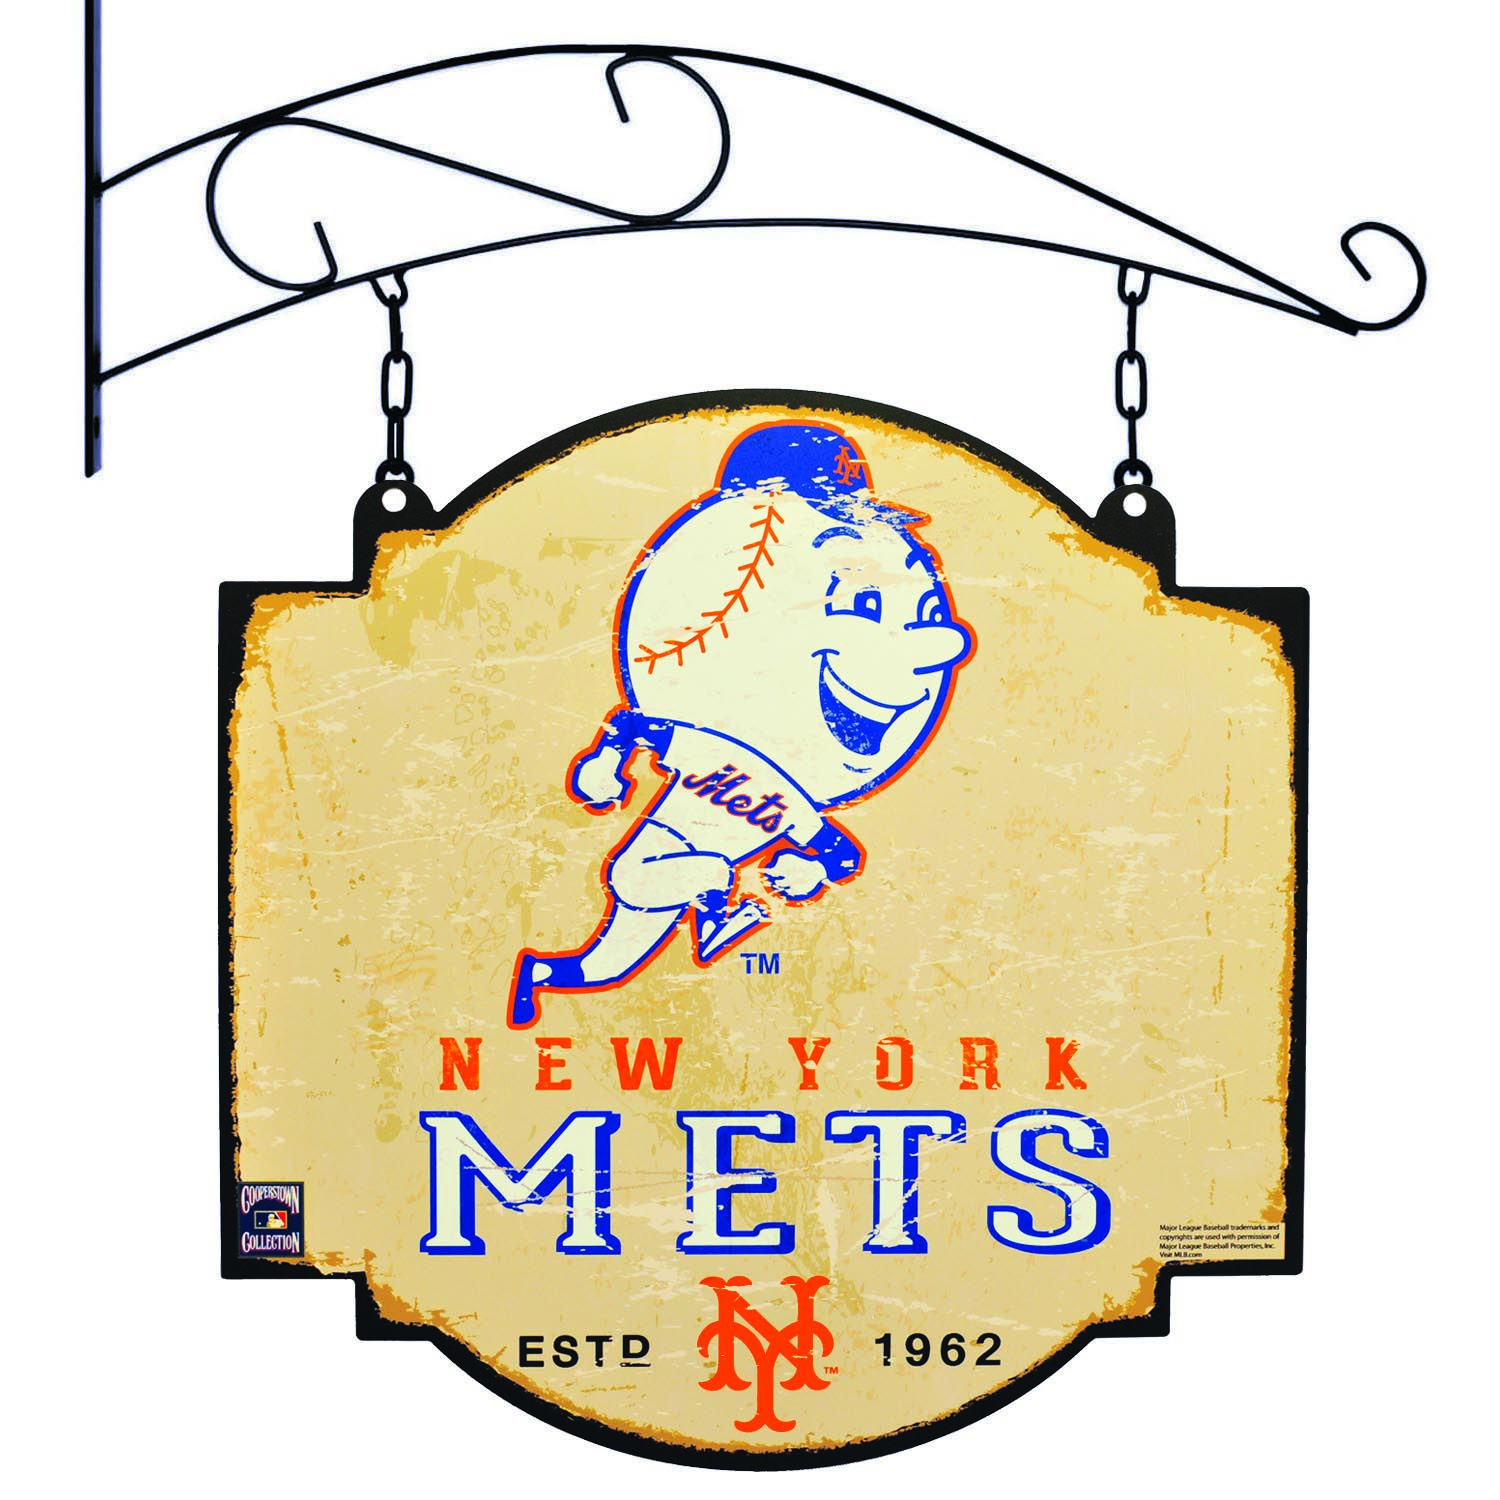 New York Mets Tavern Sign New York Mets New York Mets Logo Mets